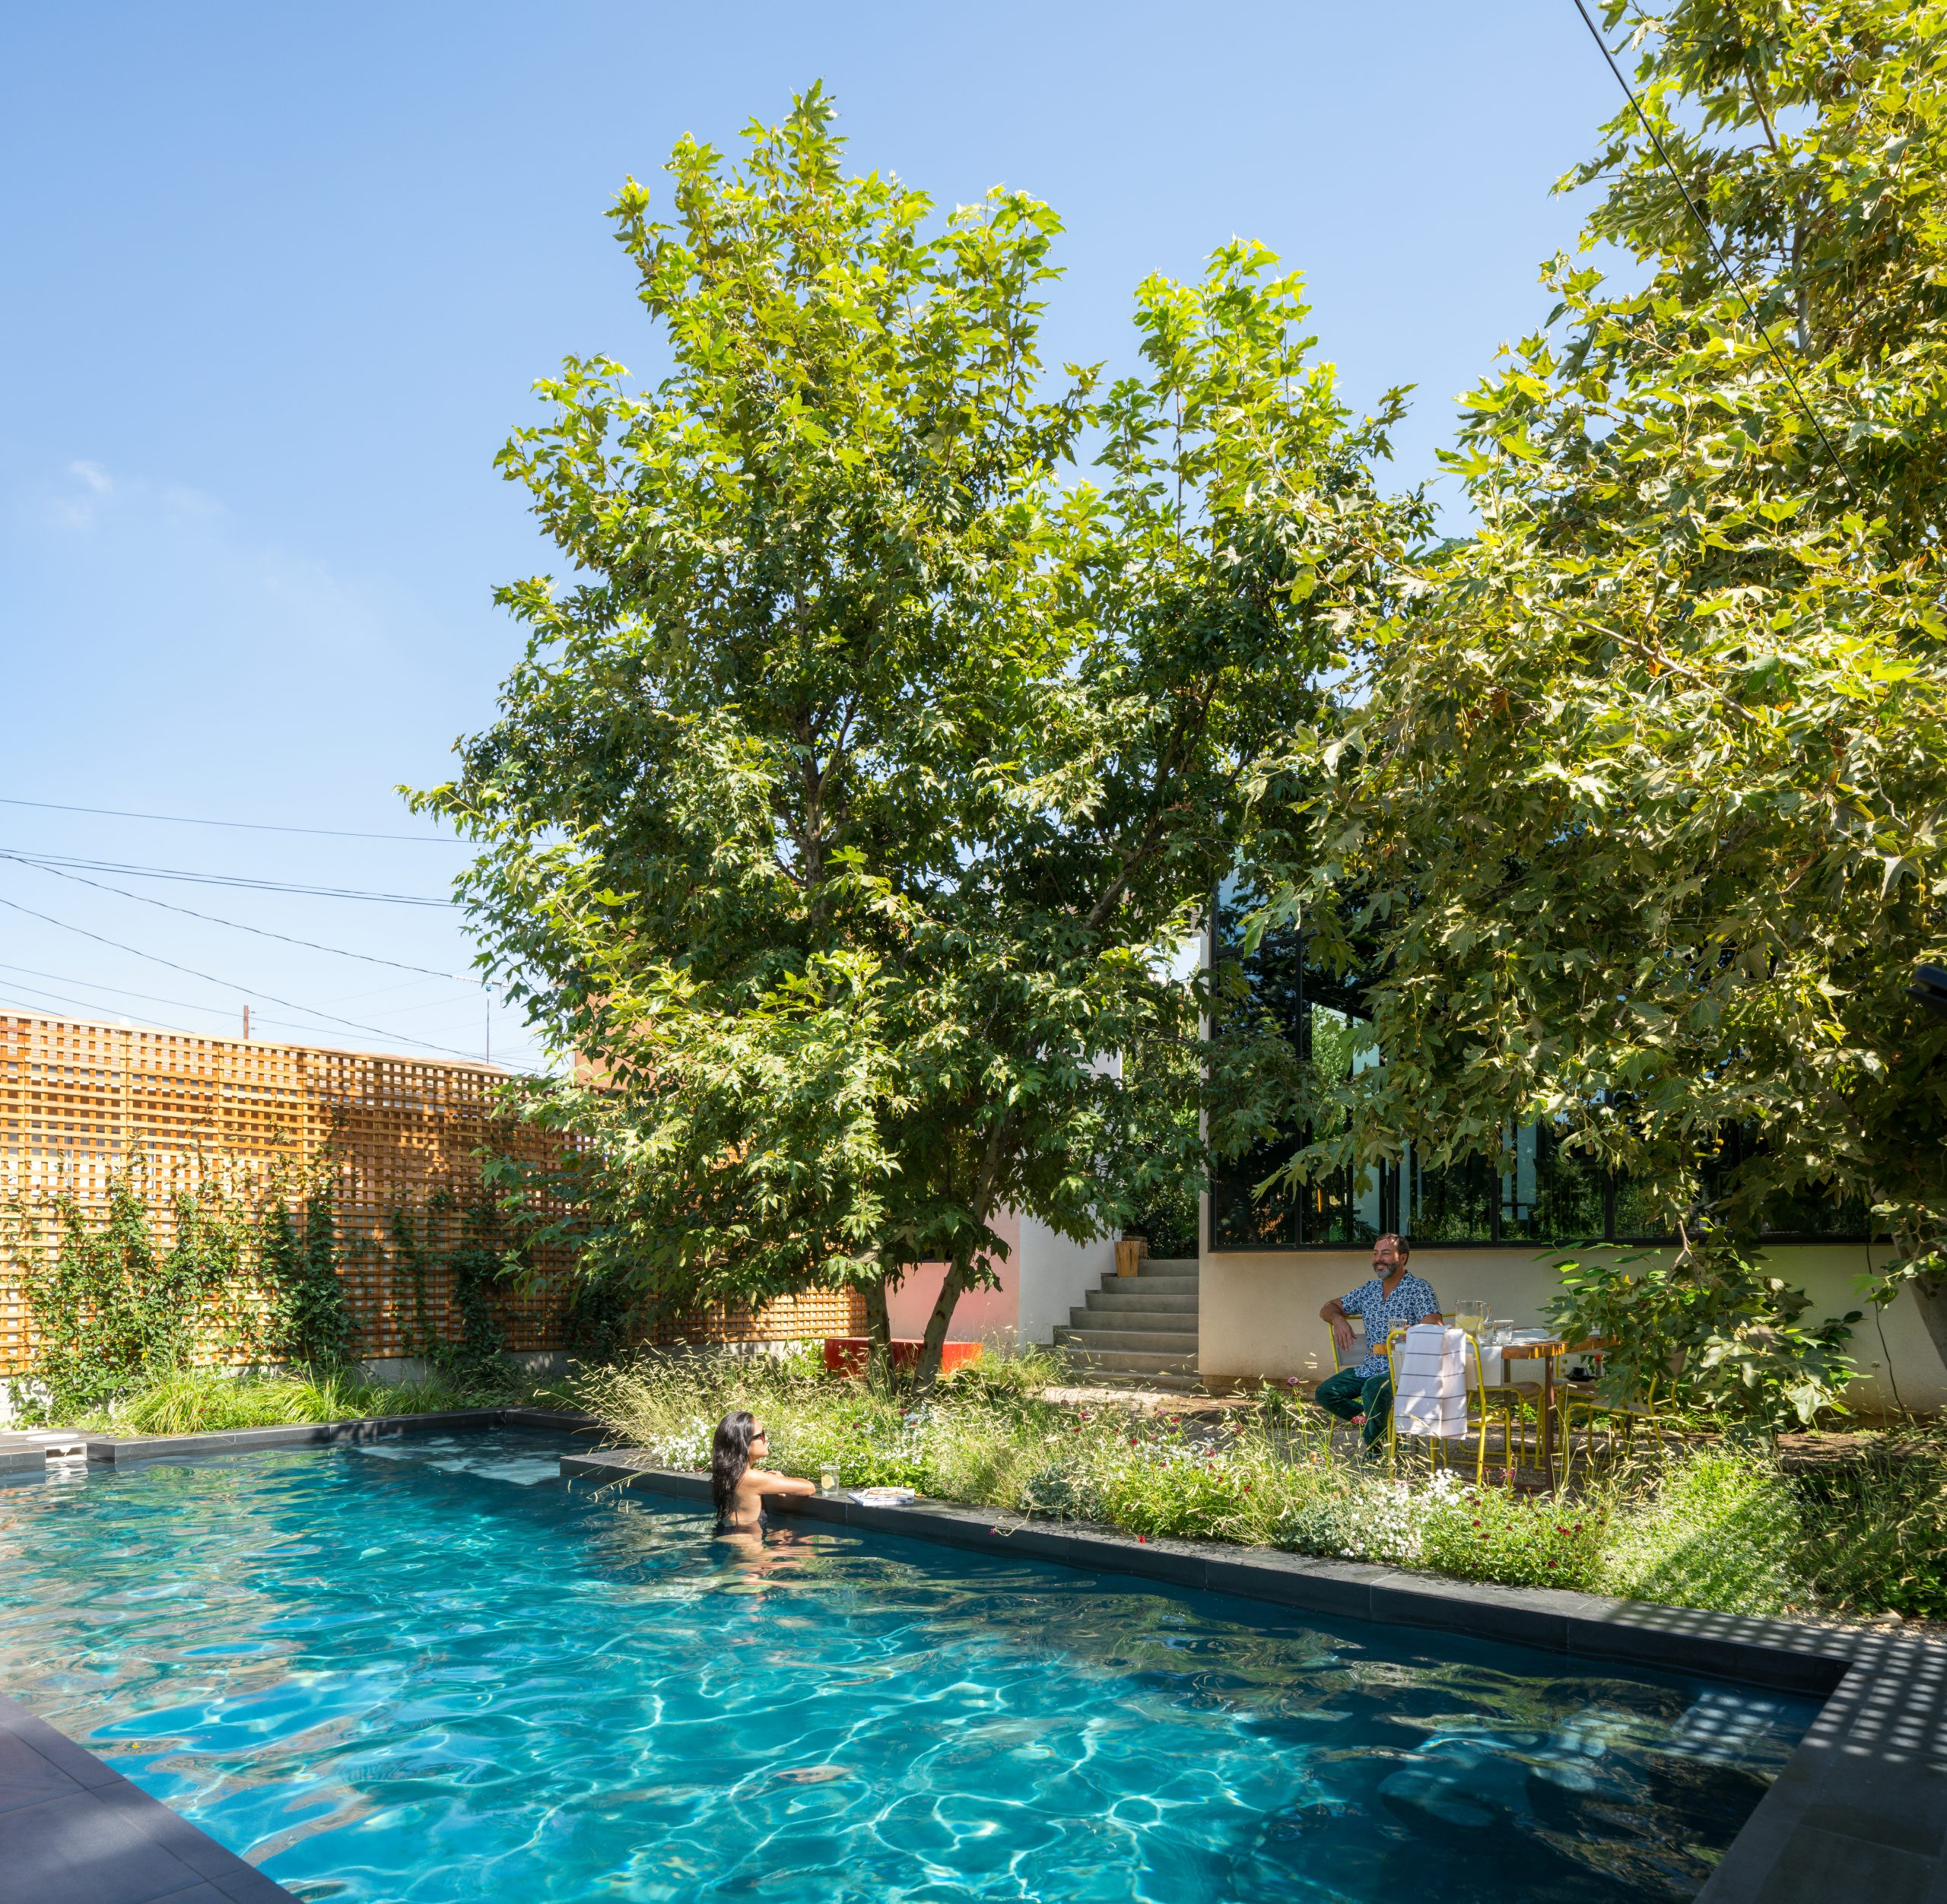 woman in swimming pool with large trees